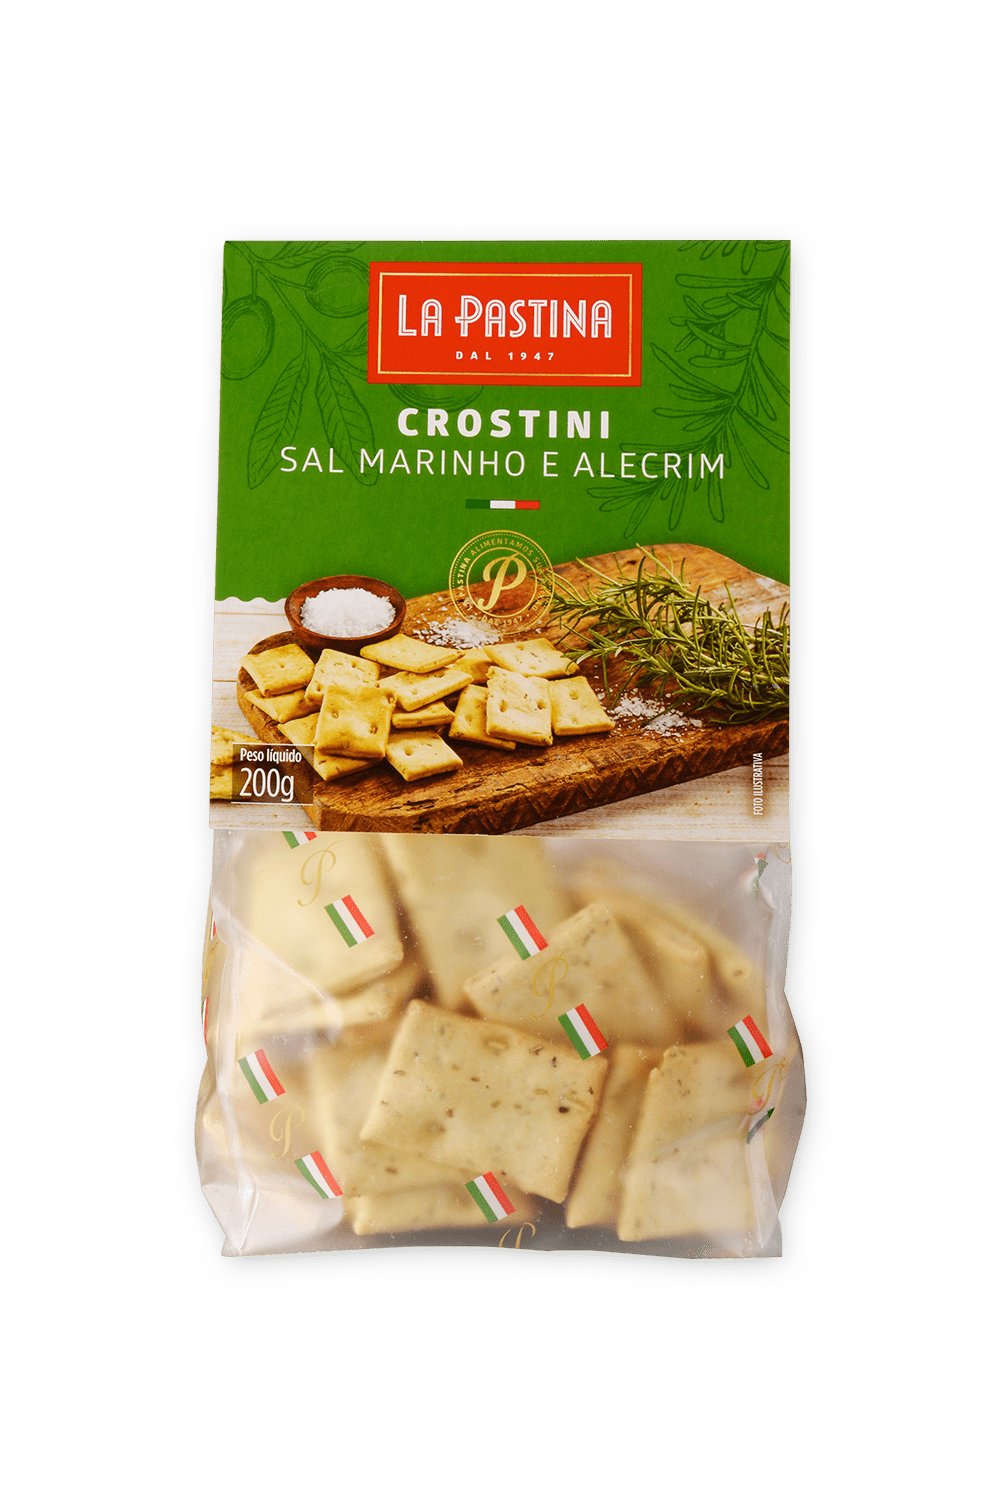 020334-CROSTINI-IT-LA-PASTINA-SAL-MAR-ALECRIN-200G